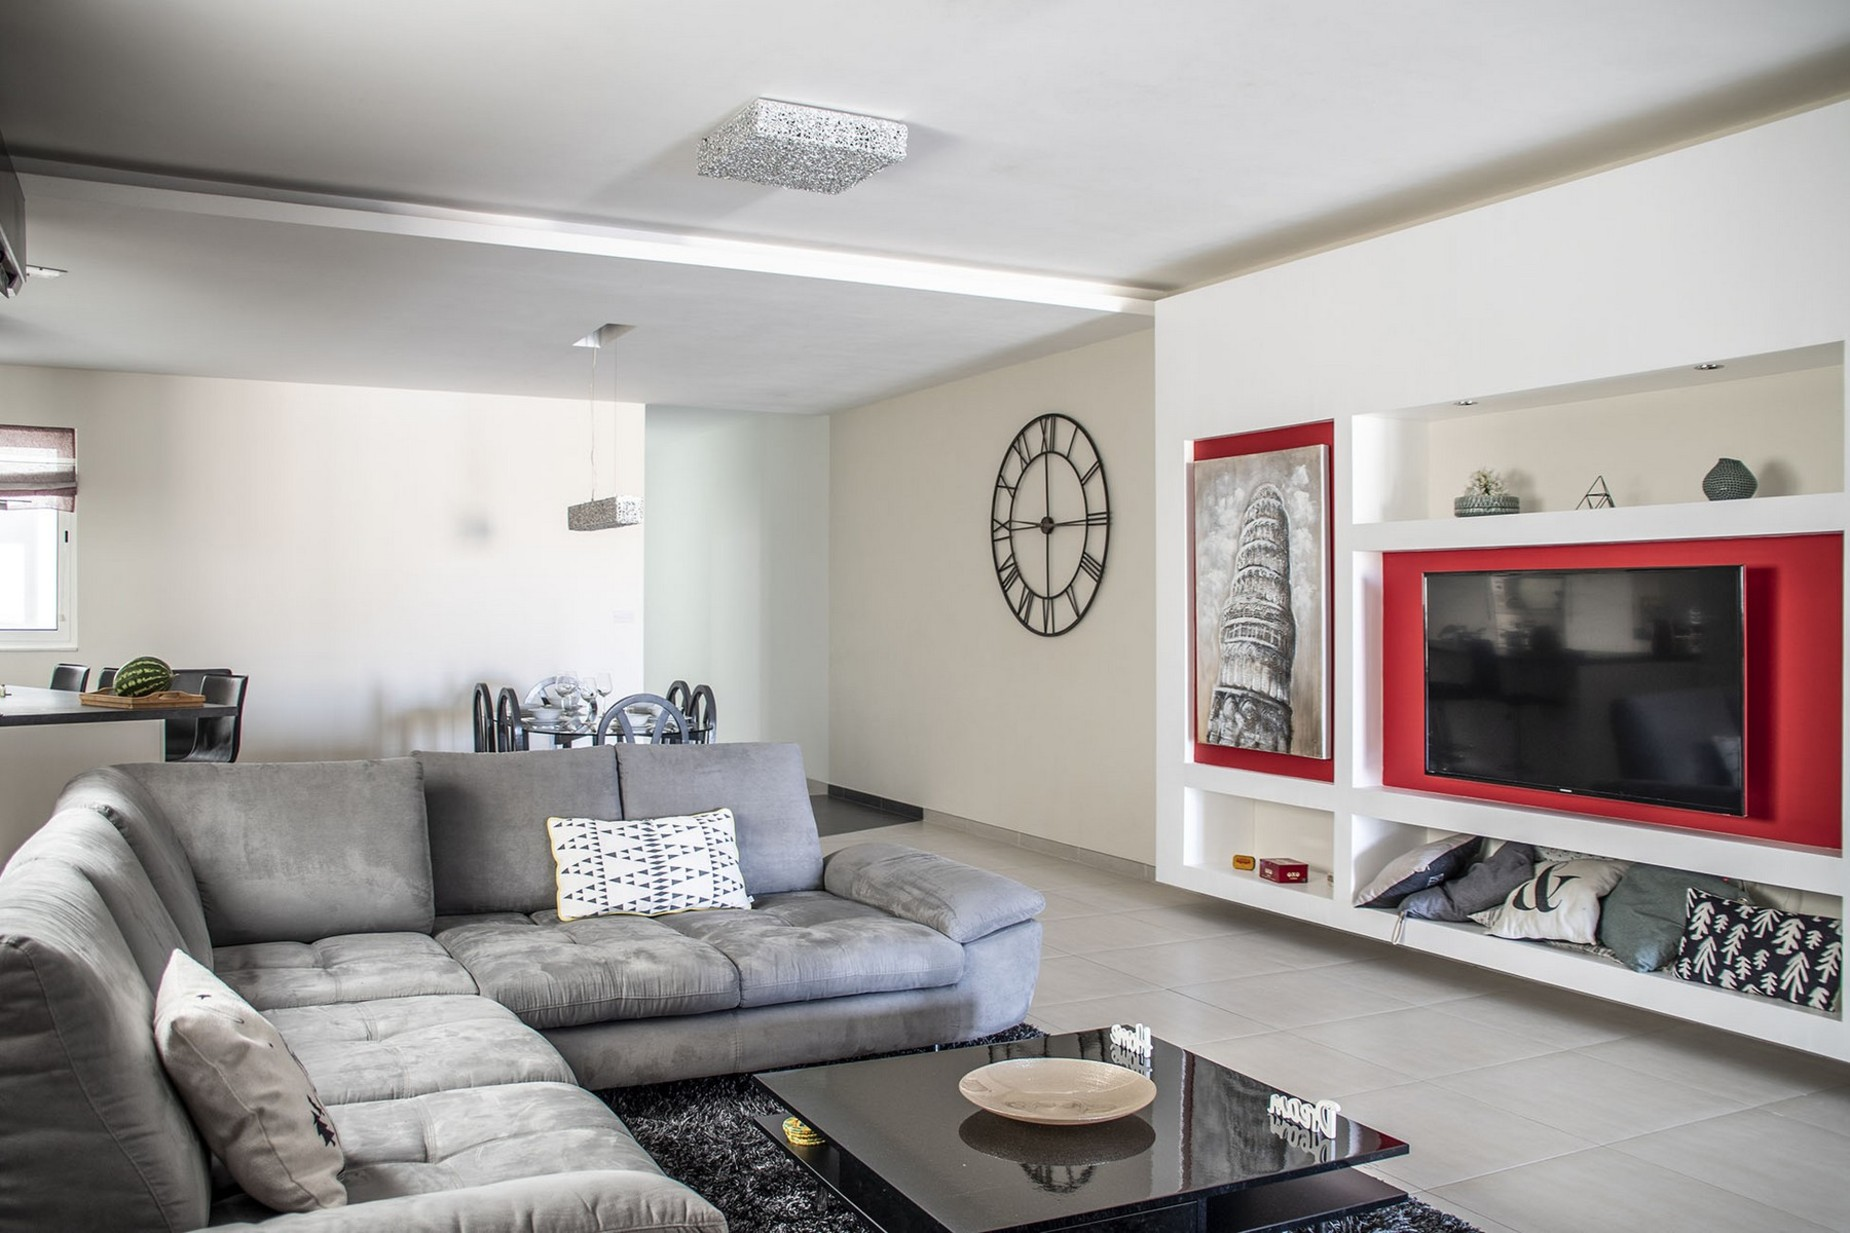 3 bed Apartment For Rent in Attard, Attard - thumb 4